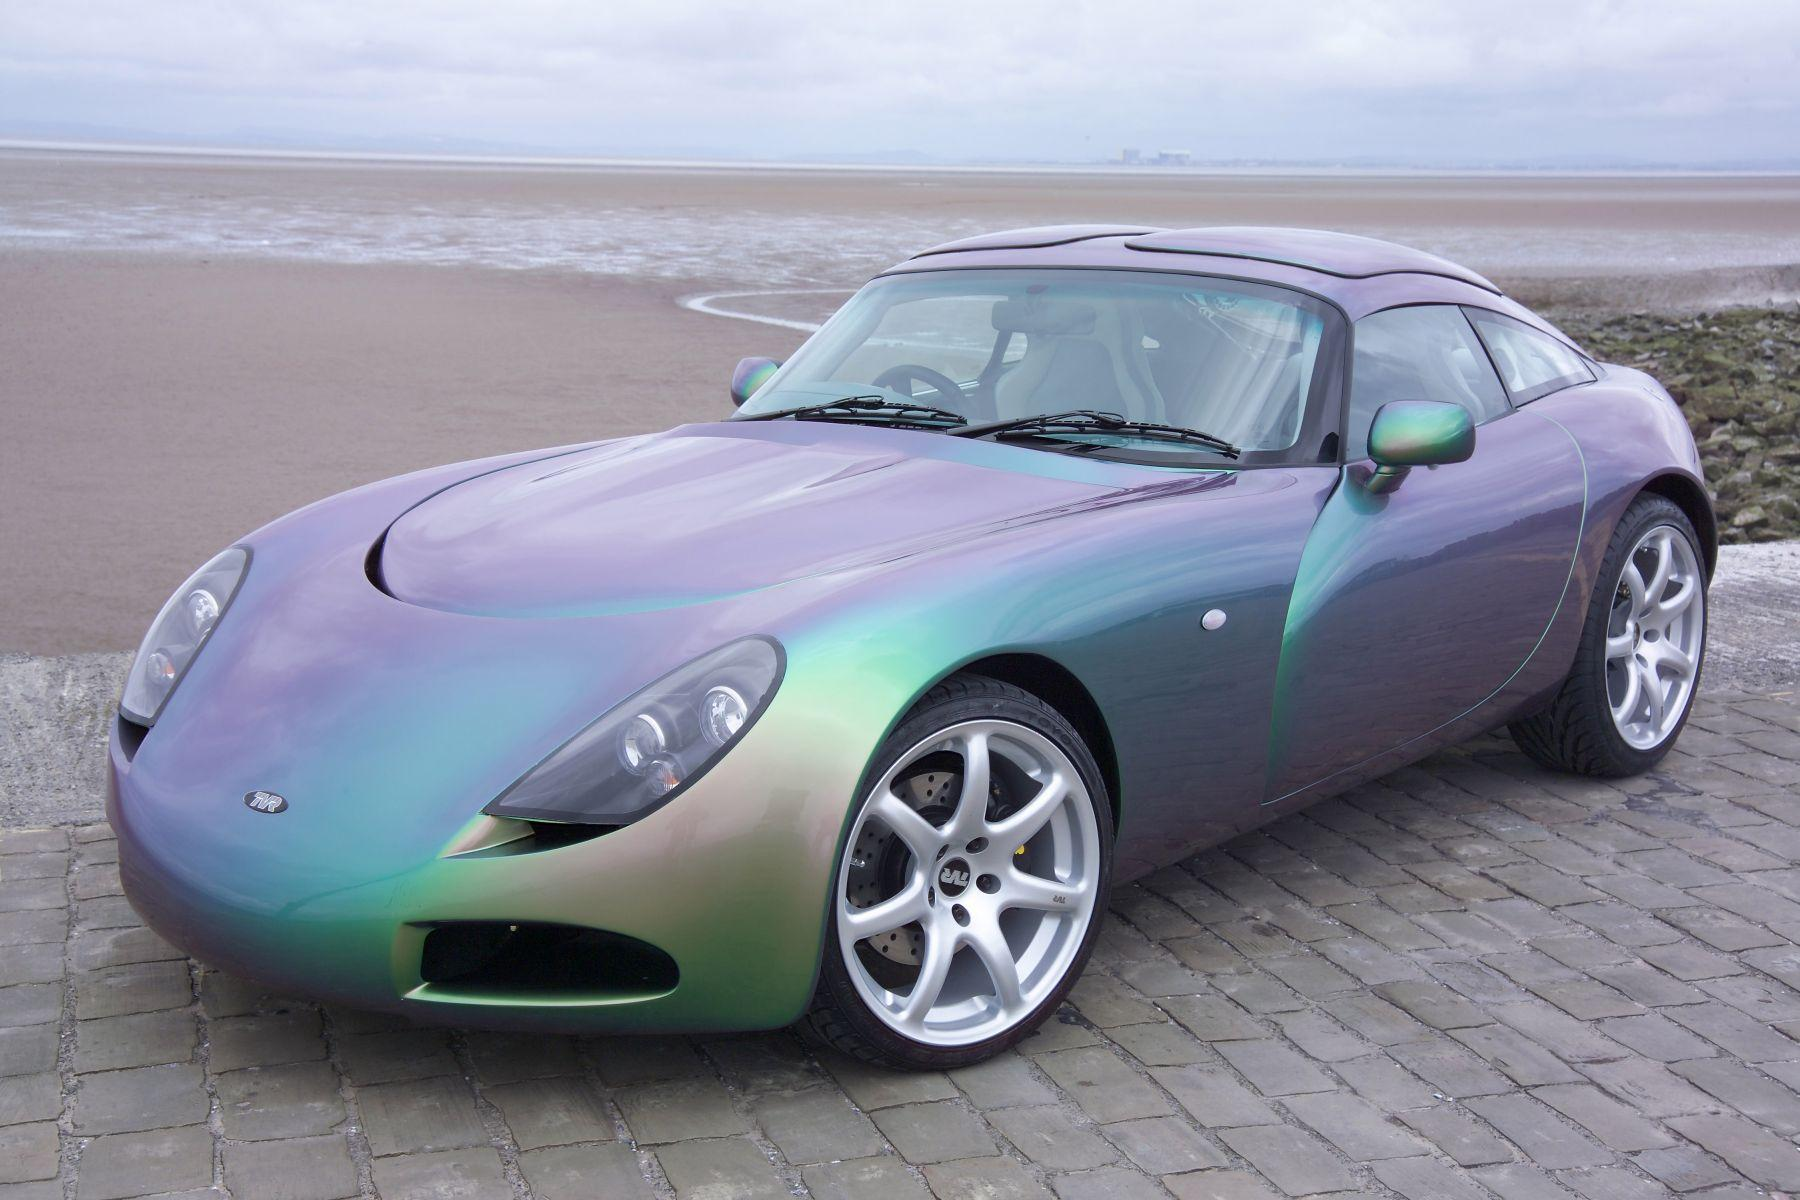 tvr t350t photos reviews news specs buy car. Black Bedroom Furniture Sets. Home Design Ideas